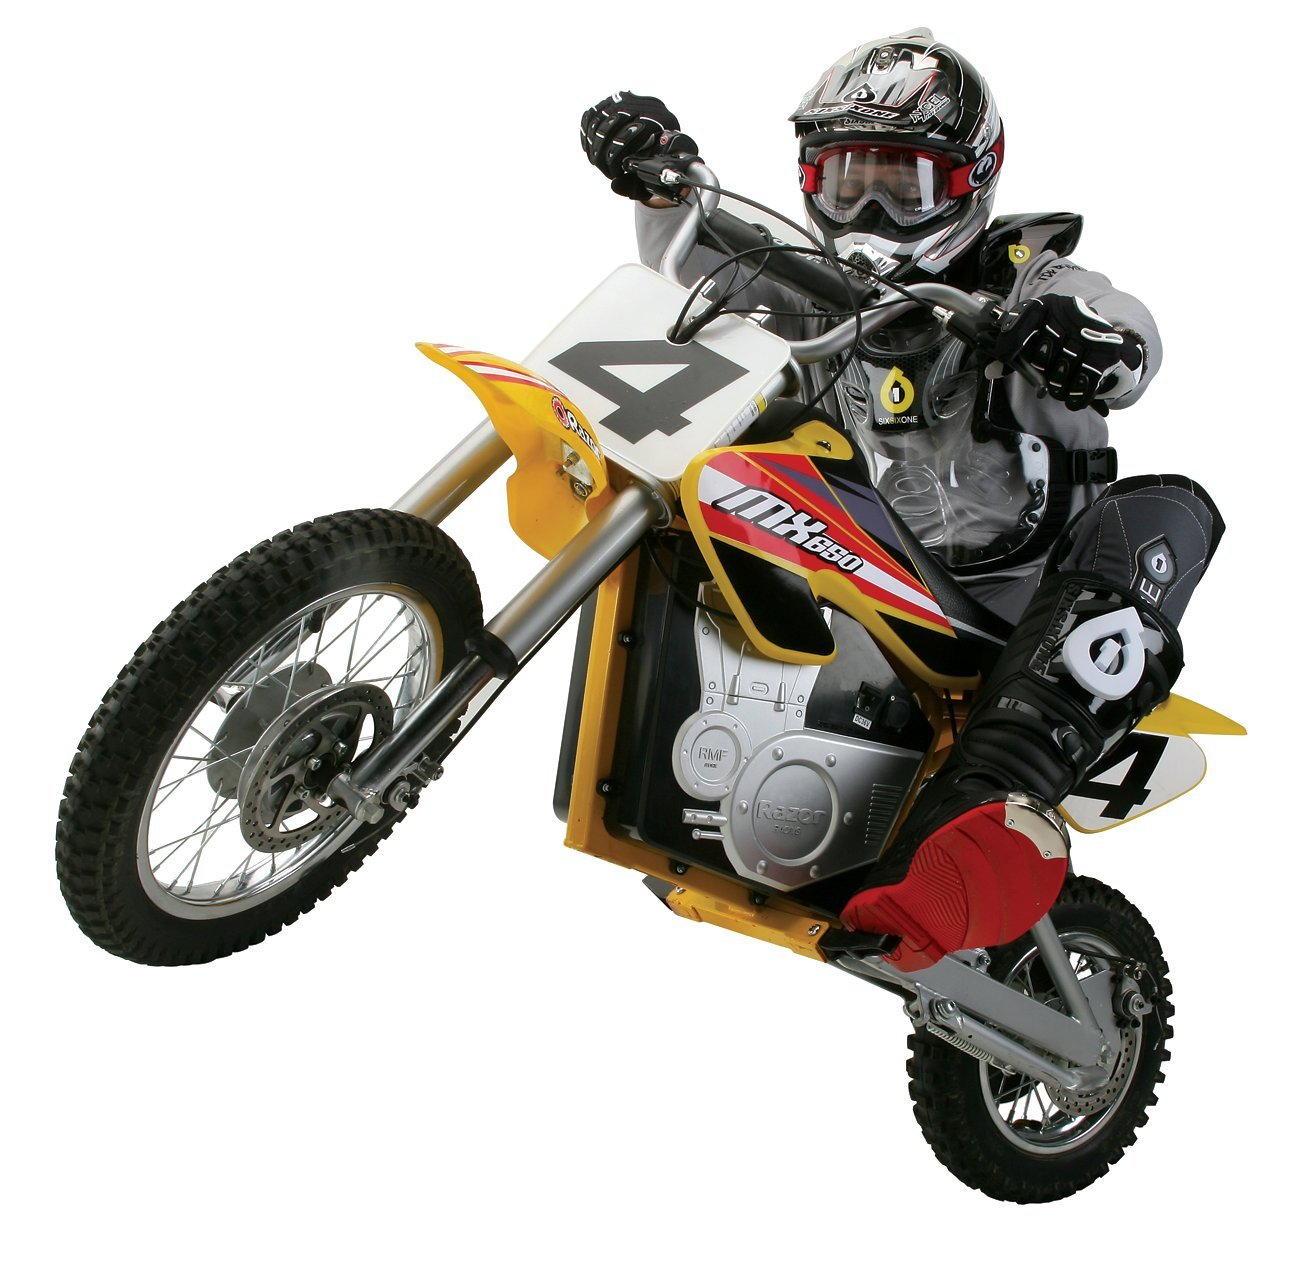 Razor MX650 Motocross bike